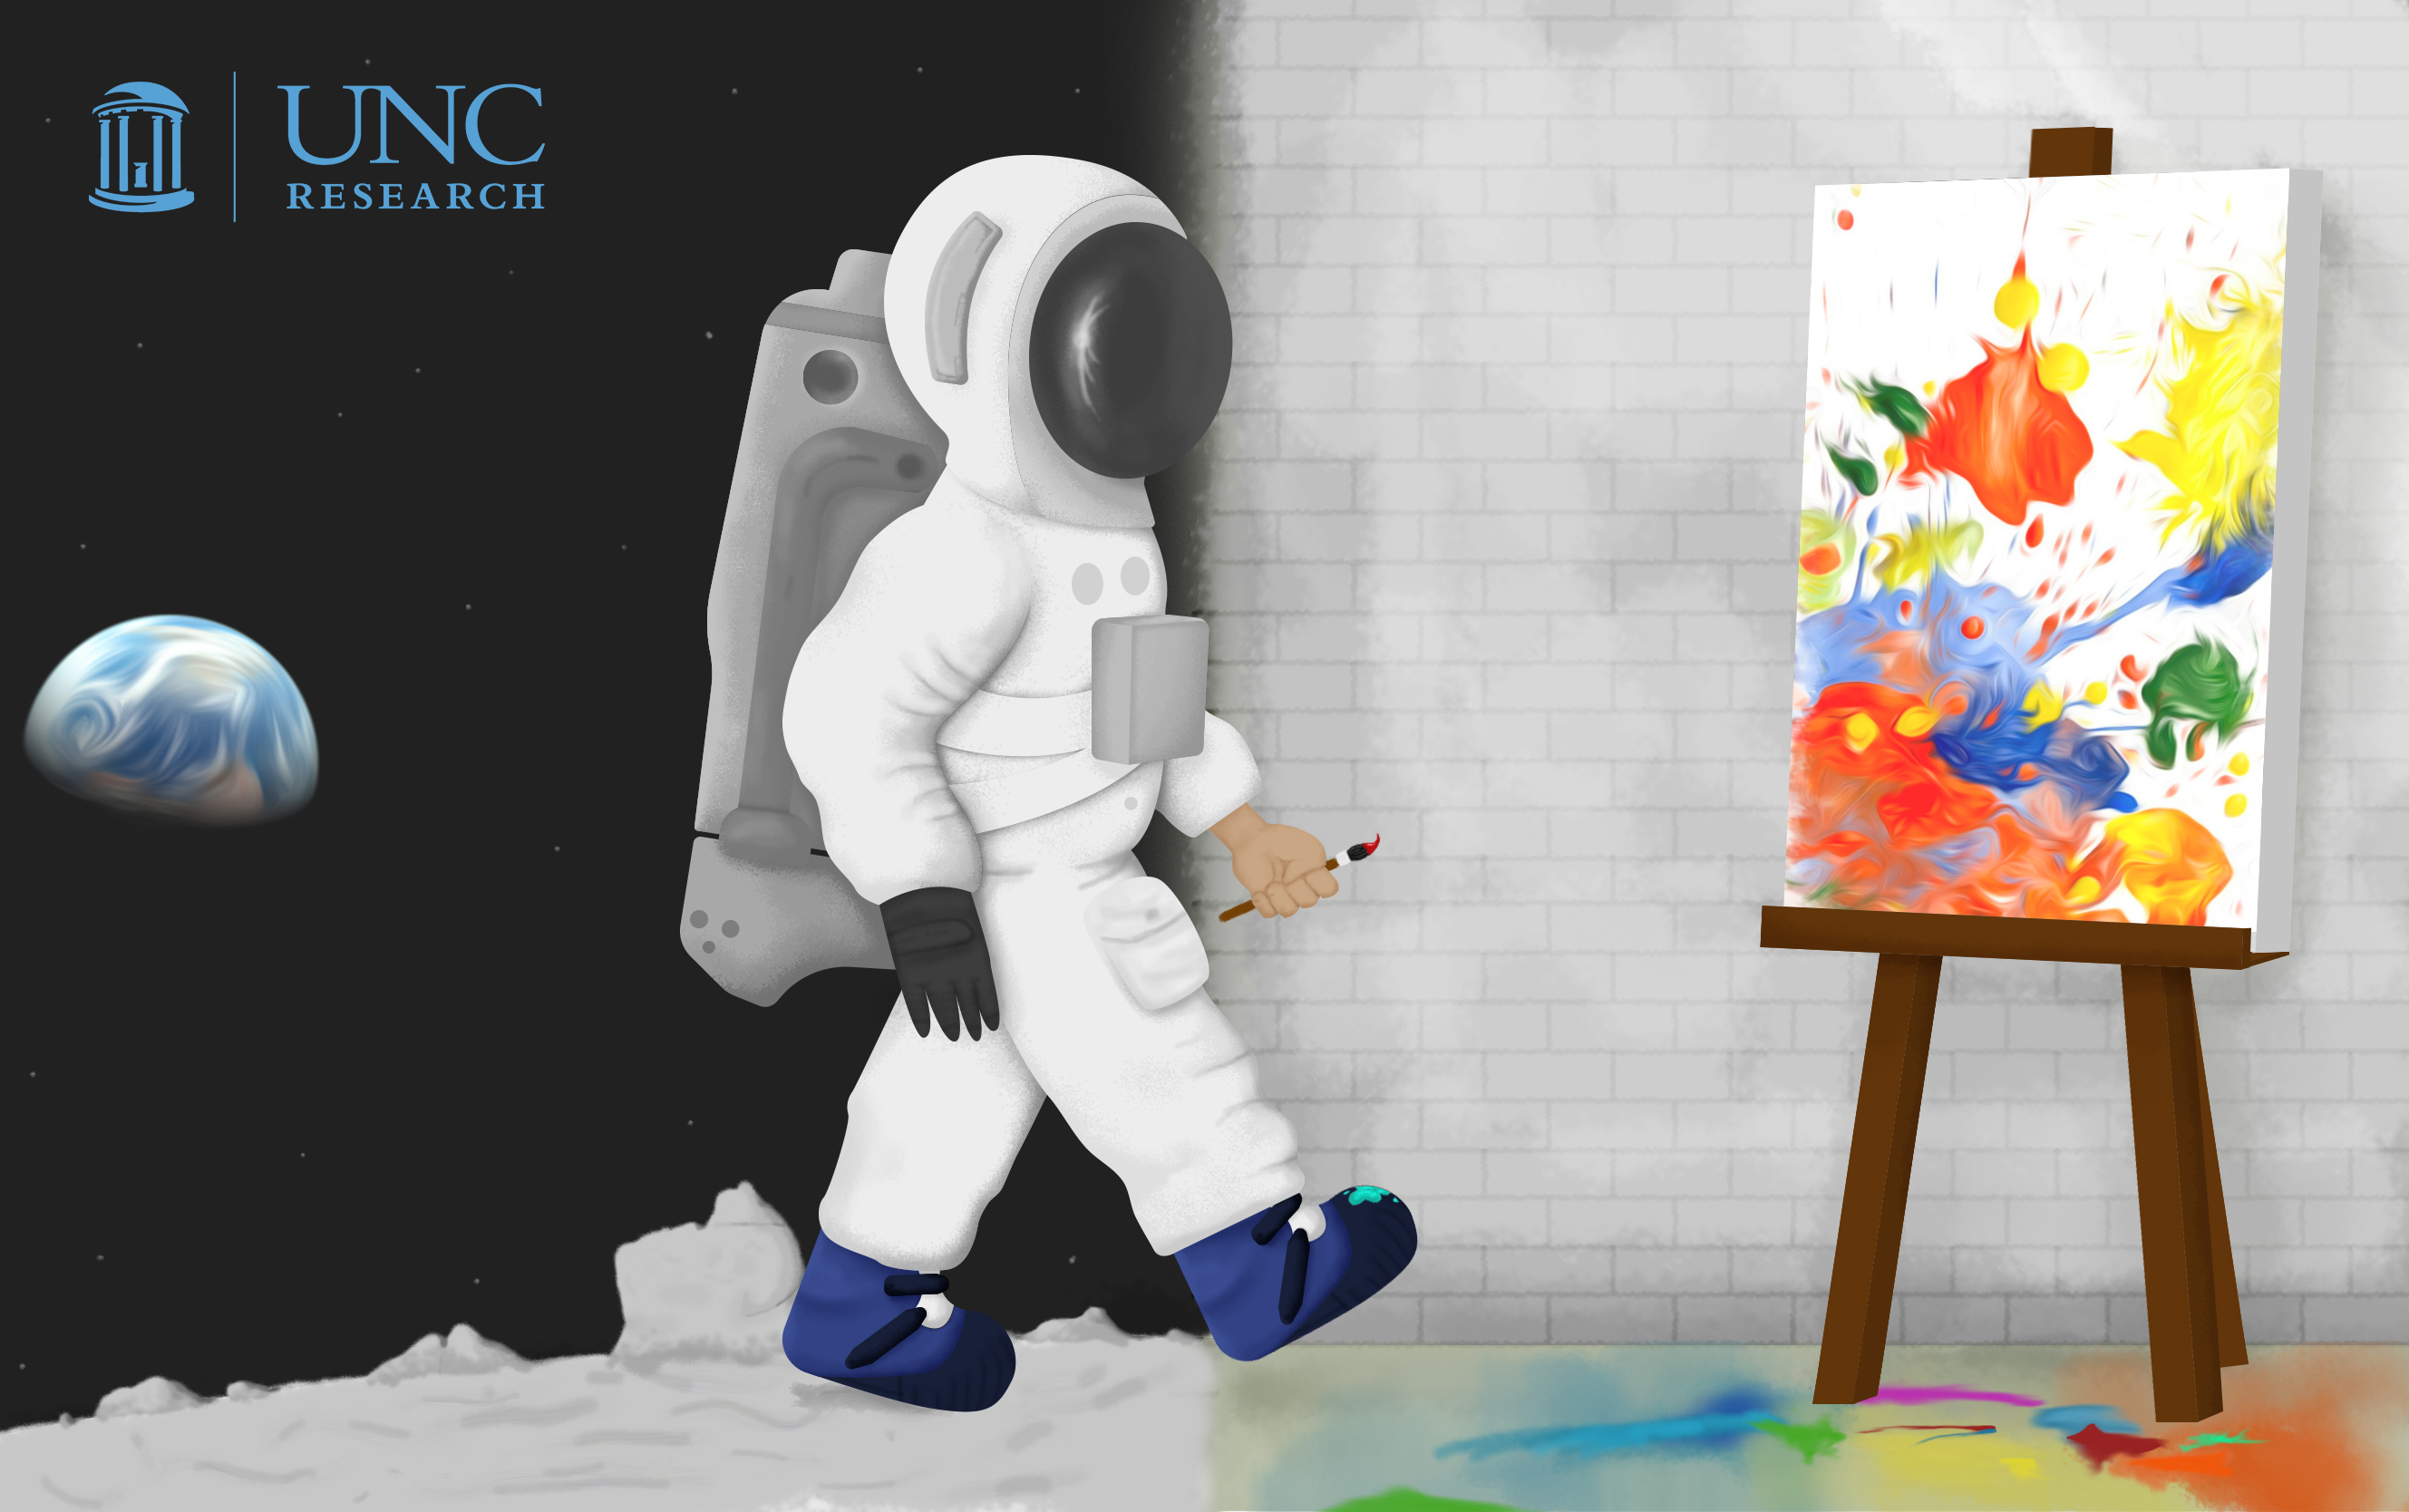 Illustration of an astronaut walking from a moon scene to a painting studio scene, holding a paint brush.